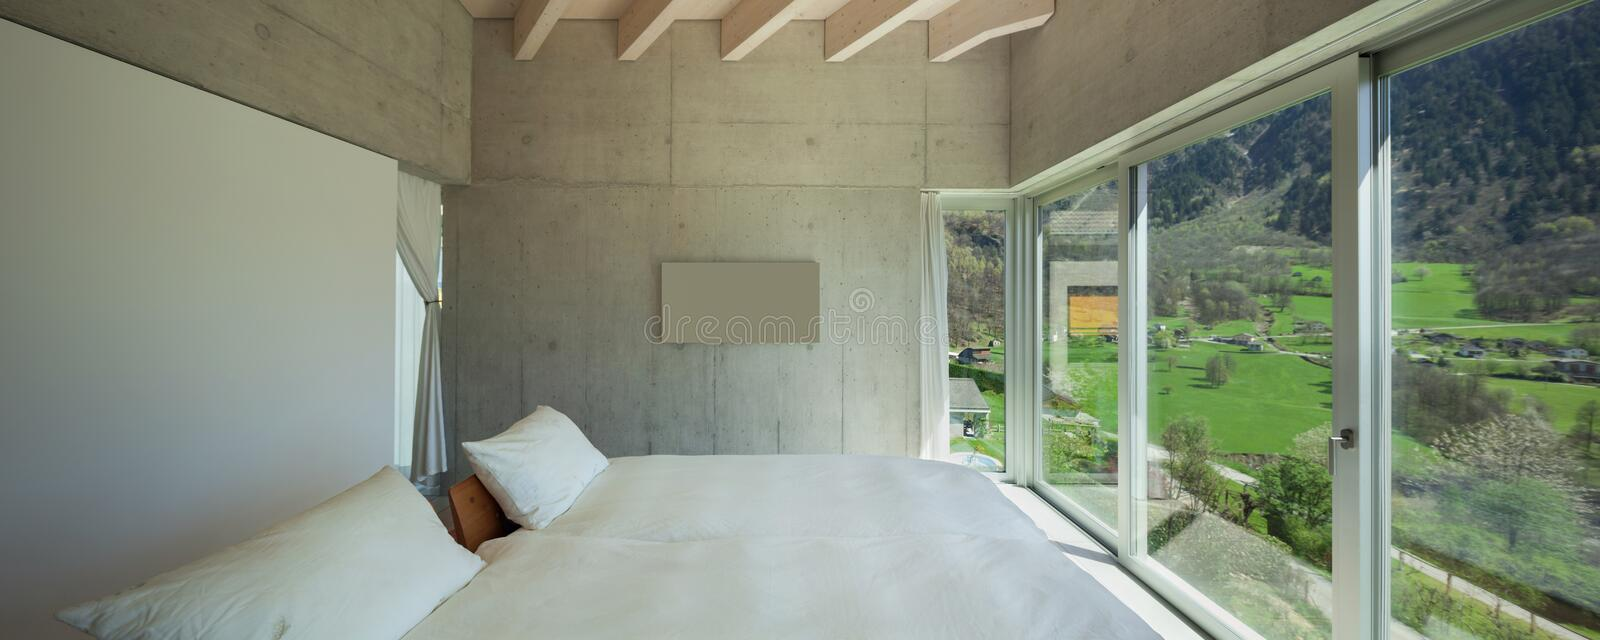 Modern chalet, bedroom stock photography